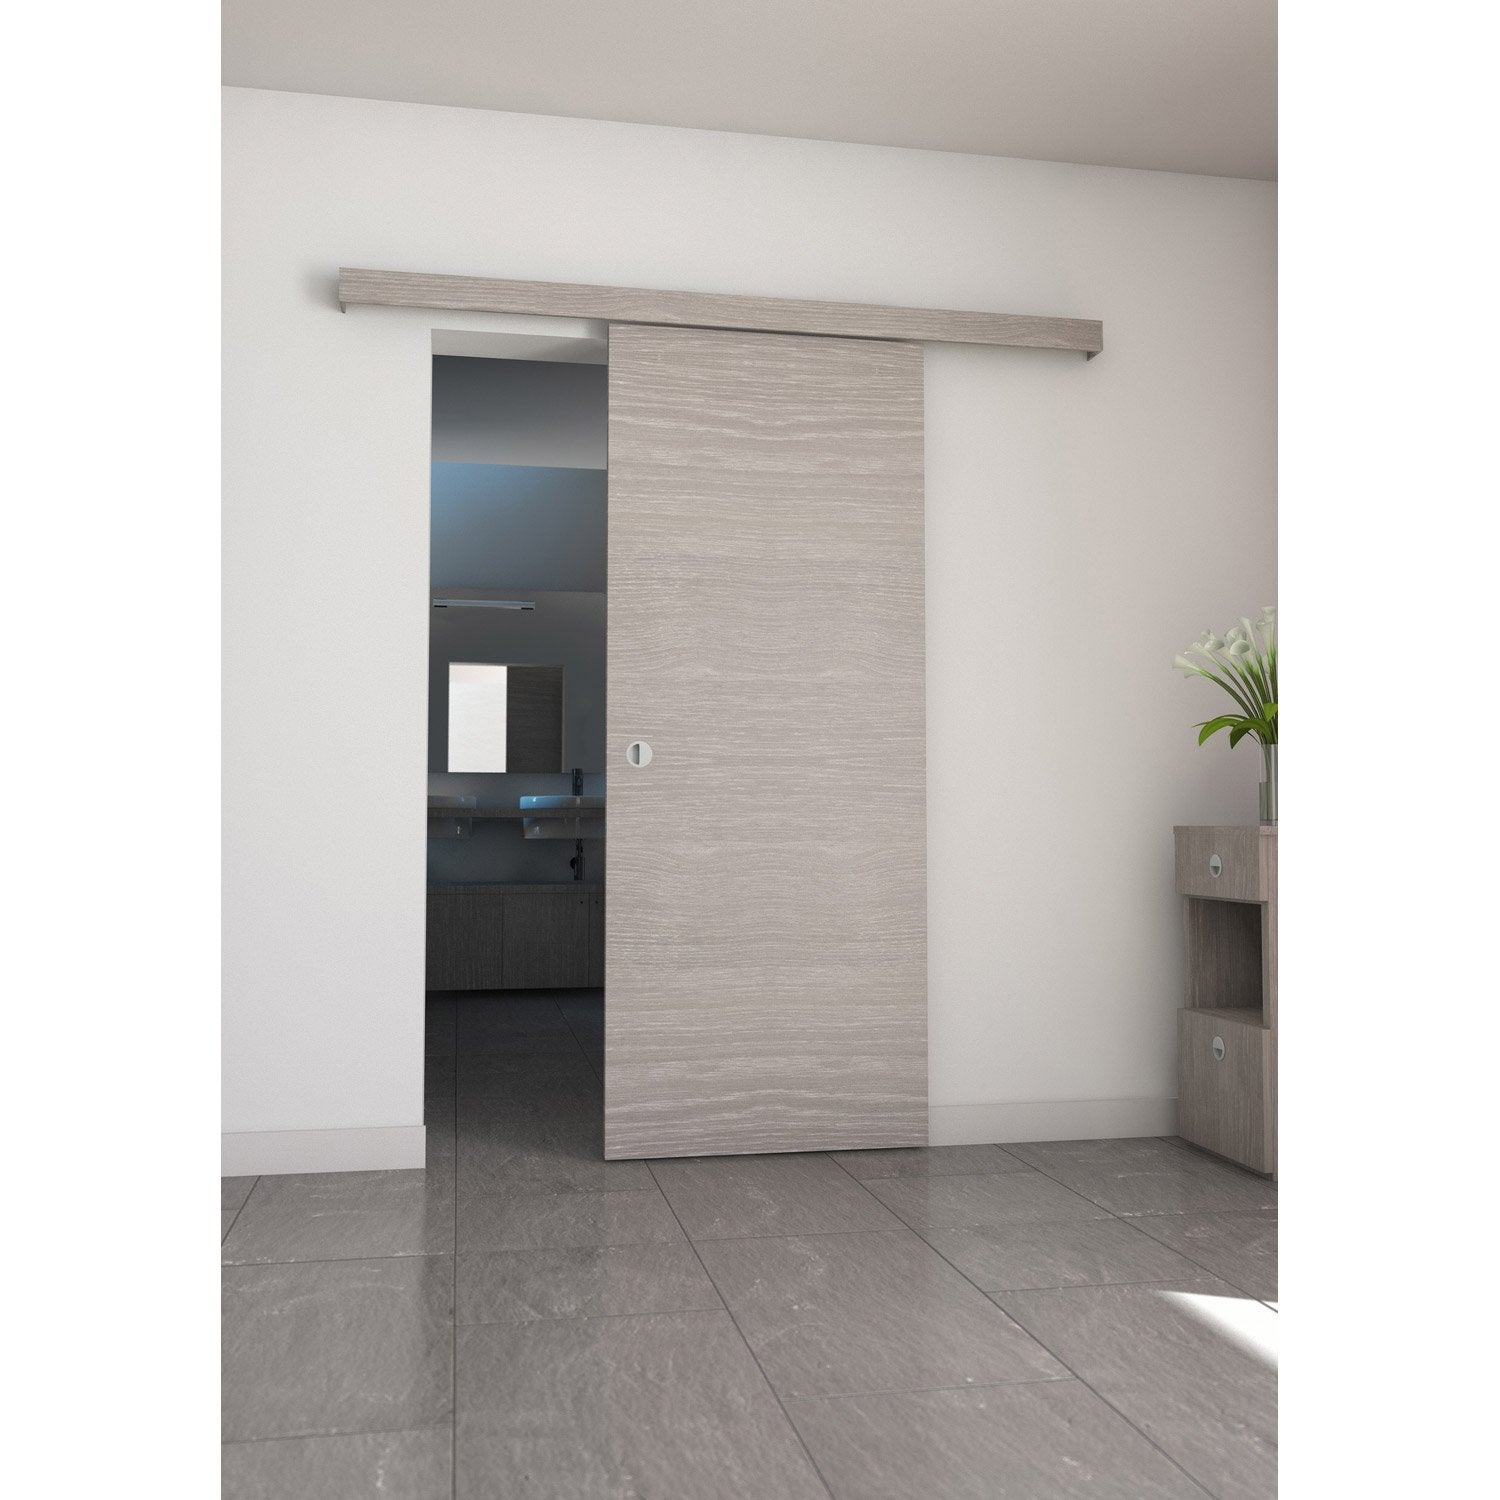 Ensemble porte coulissante coulicool mdf rev tu aluminium - Habillage porte interieur leroy merlin ...